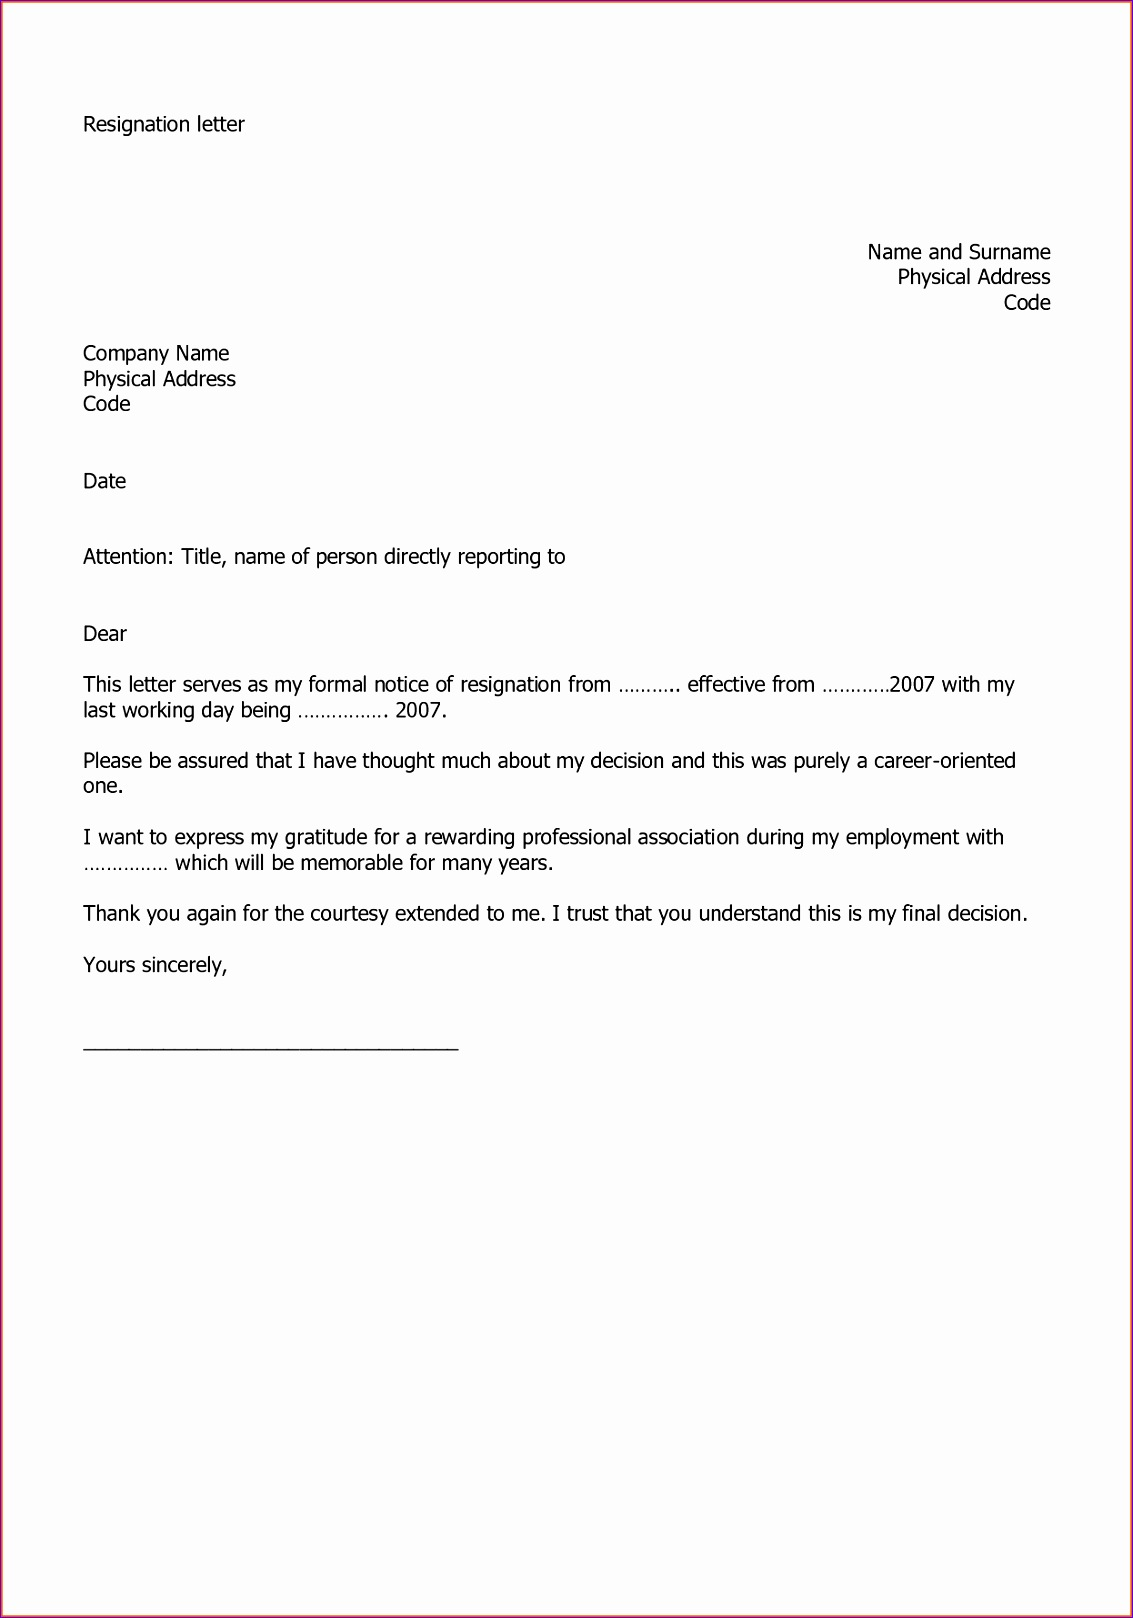 10 resignation letter sample 11331618